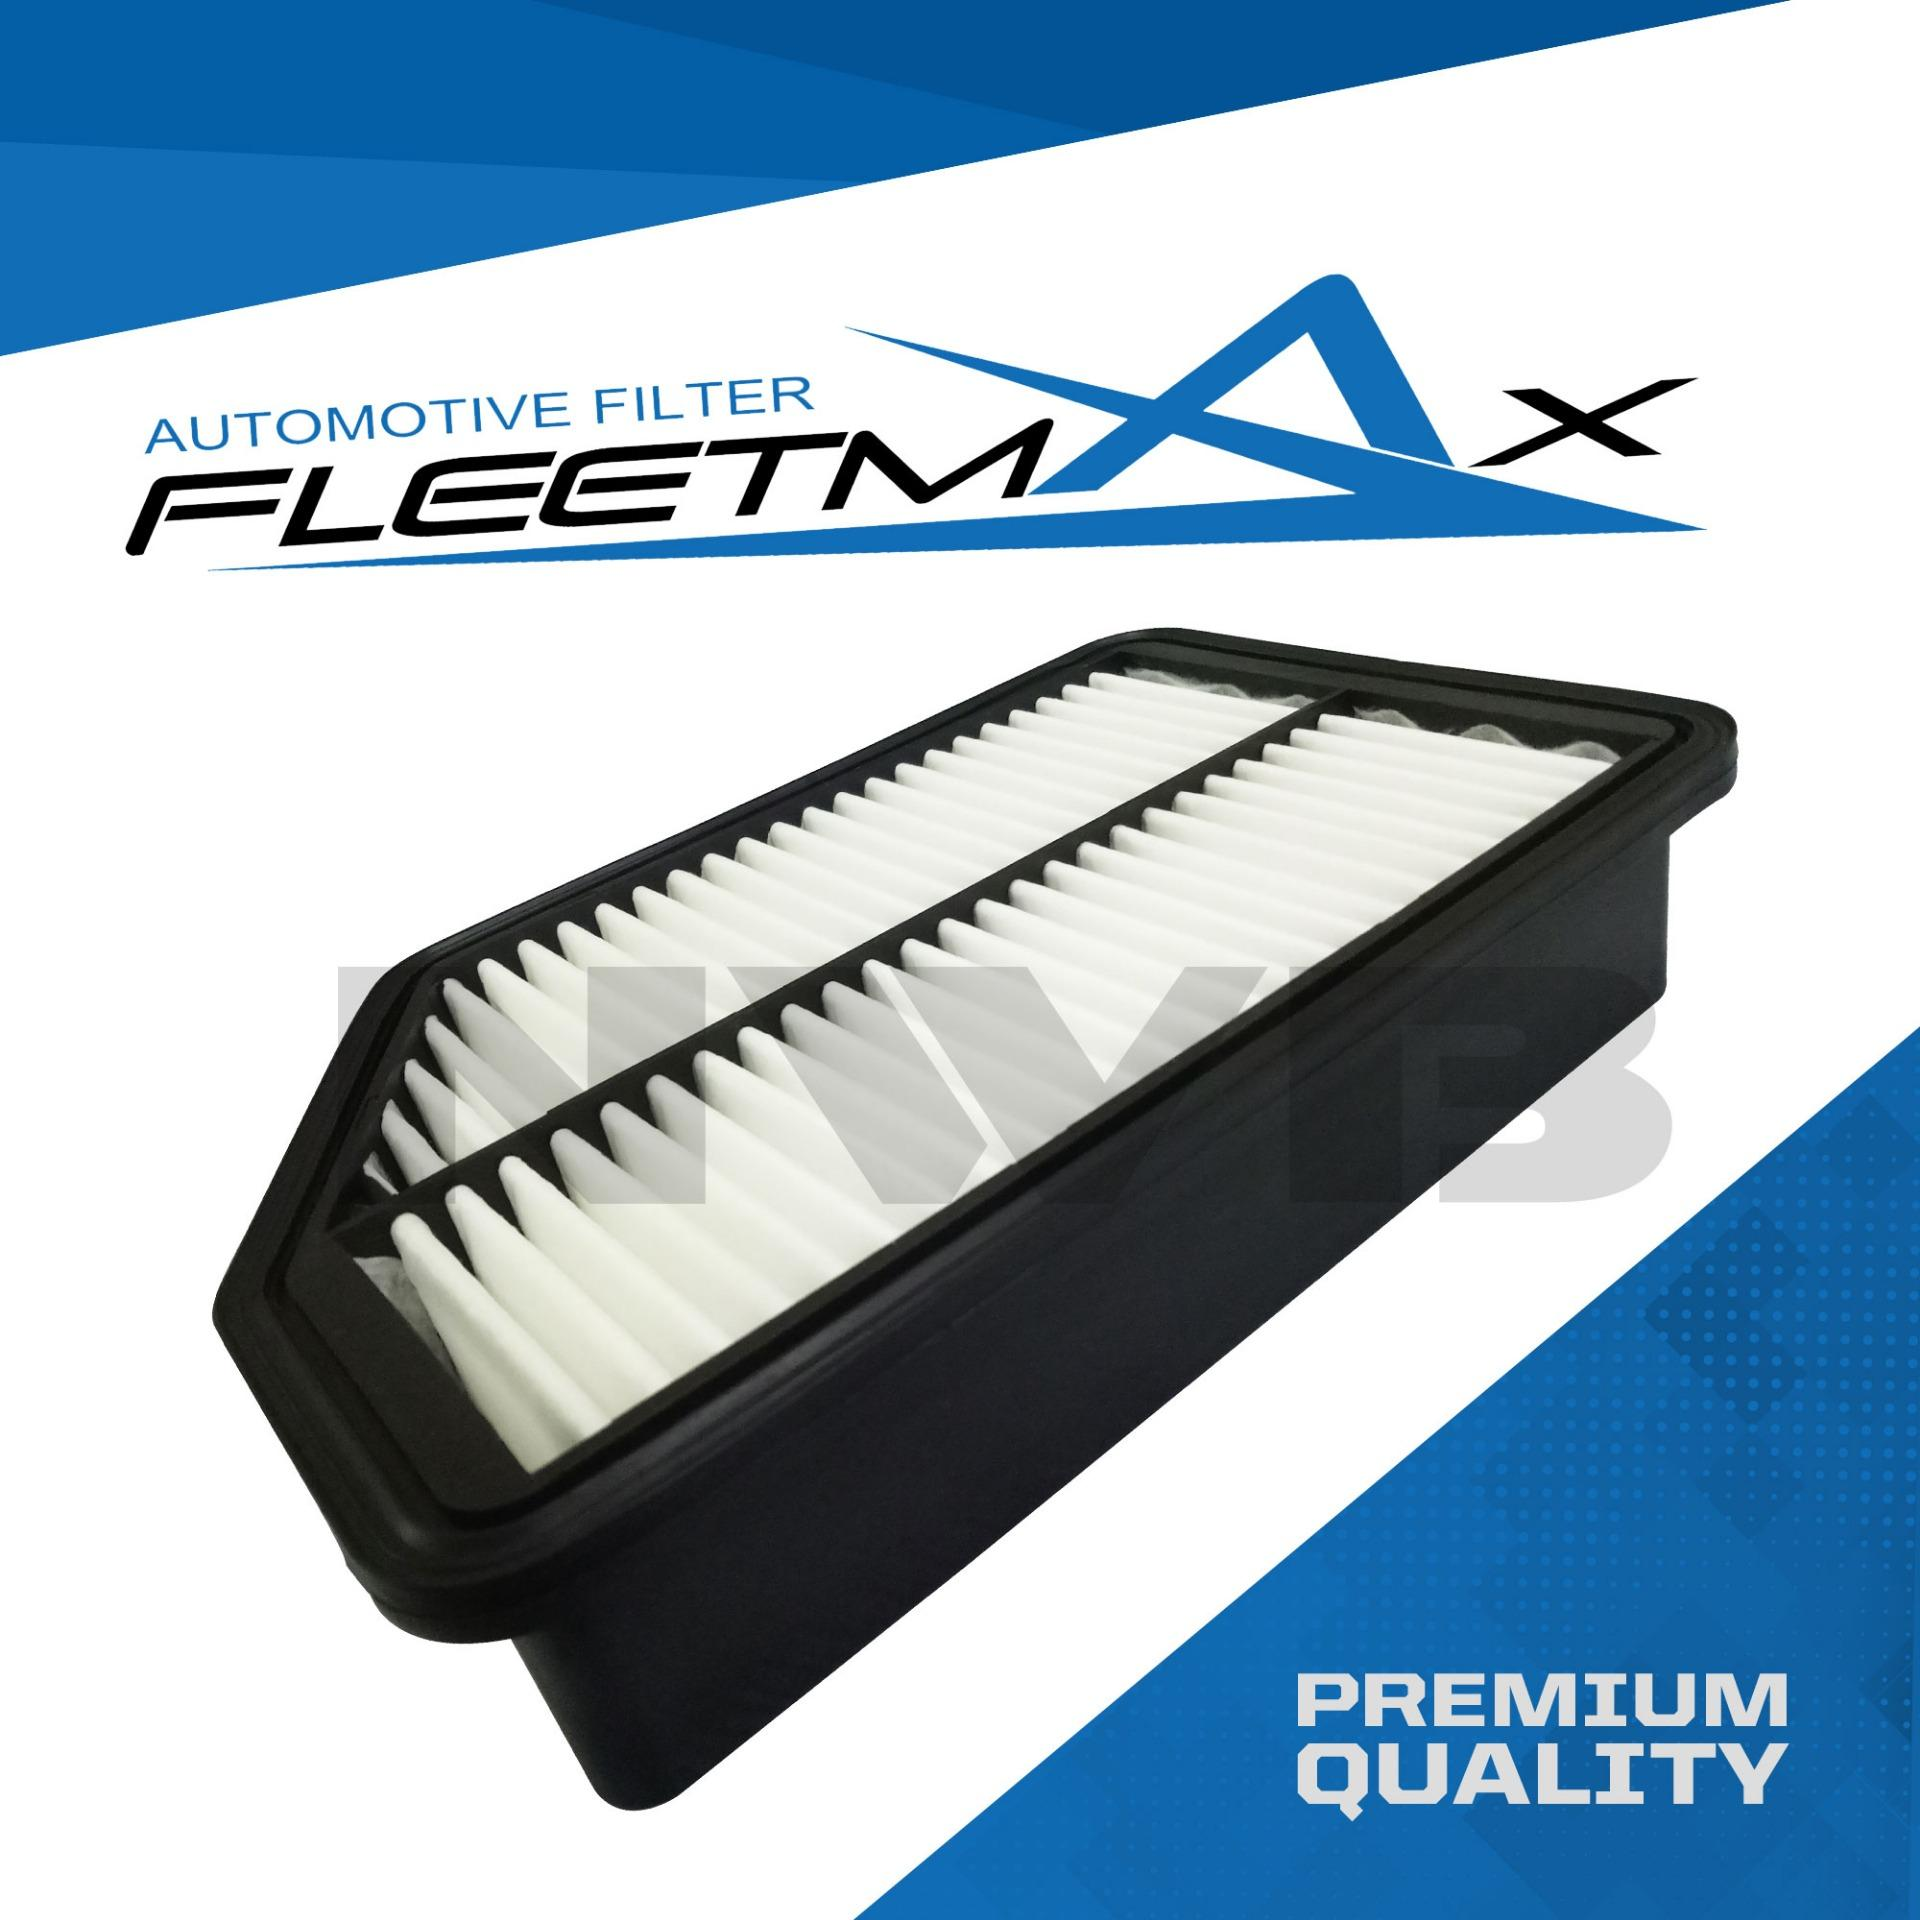 Air Filter Car For Sale Engine Online Brands Prices 2009 F150 Fuel Fleetmax Non Turbo Hyundai Tucson 20 24